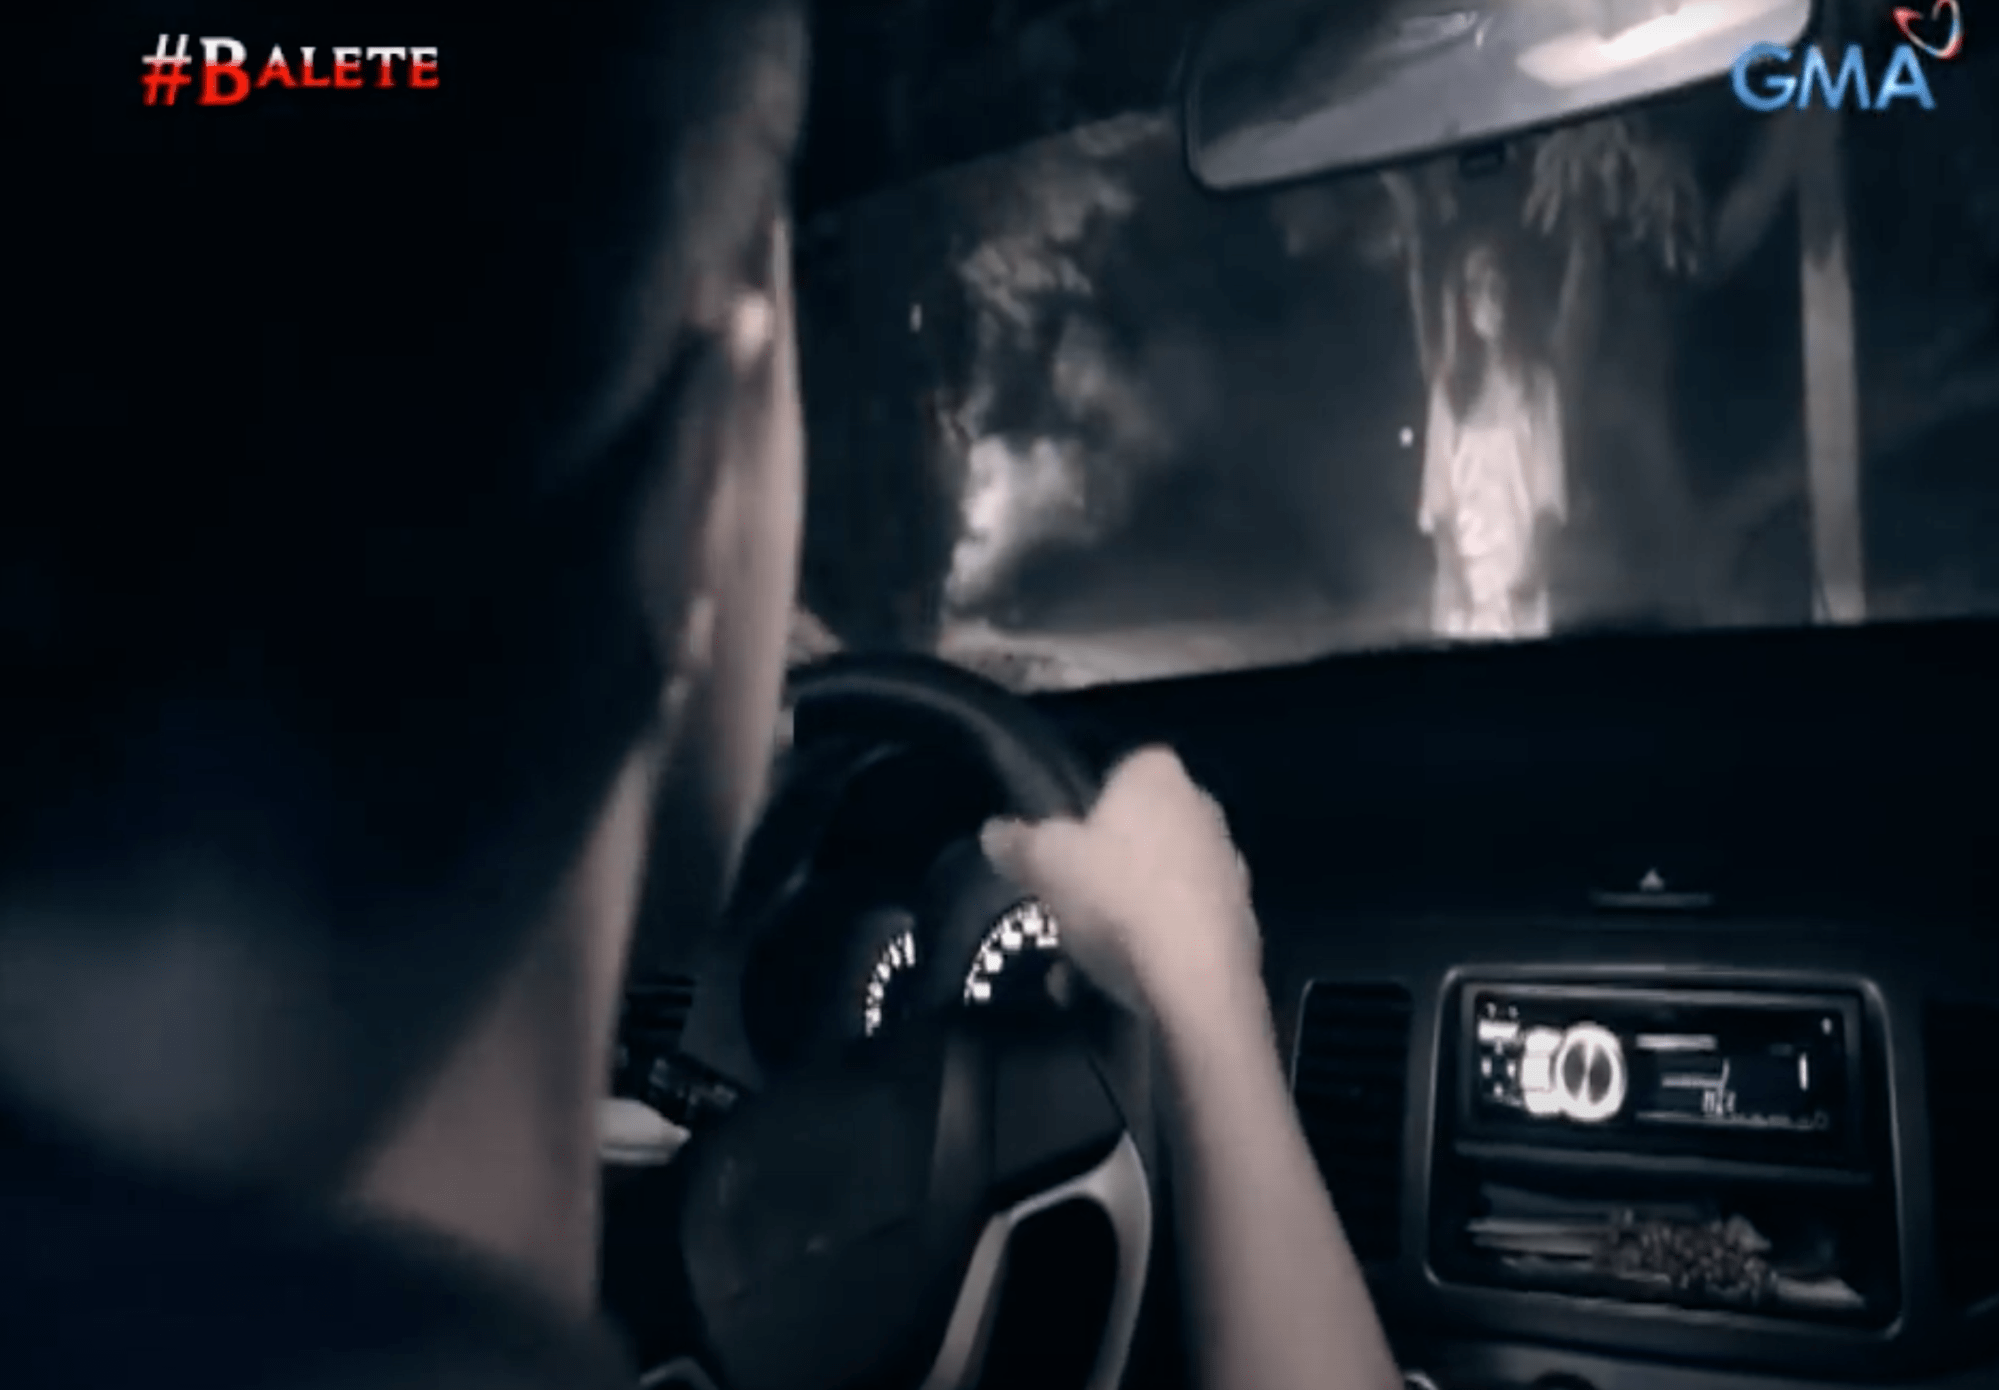 horror and crime documentaries - balete drive